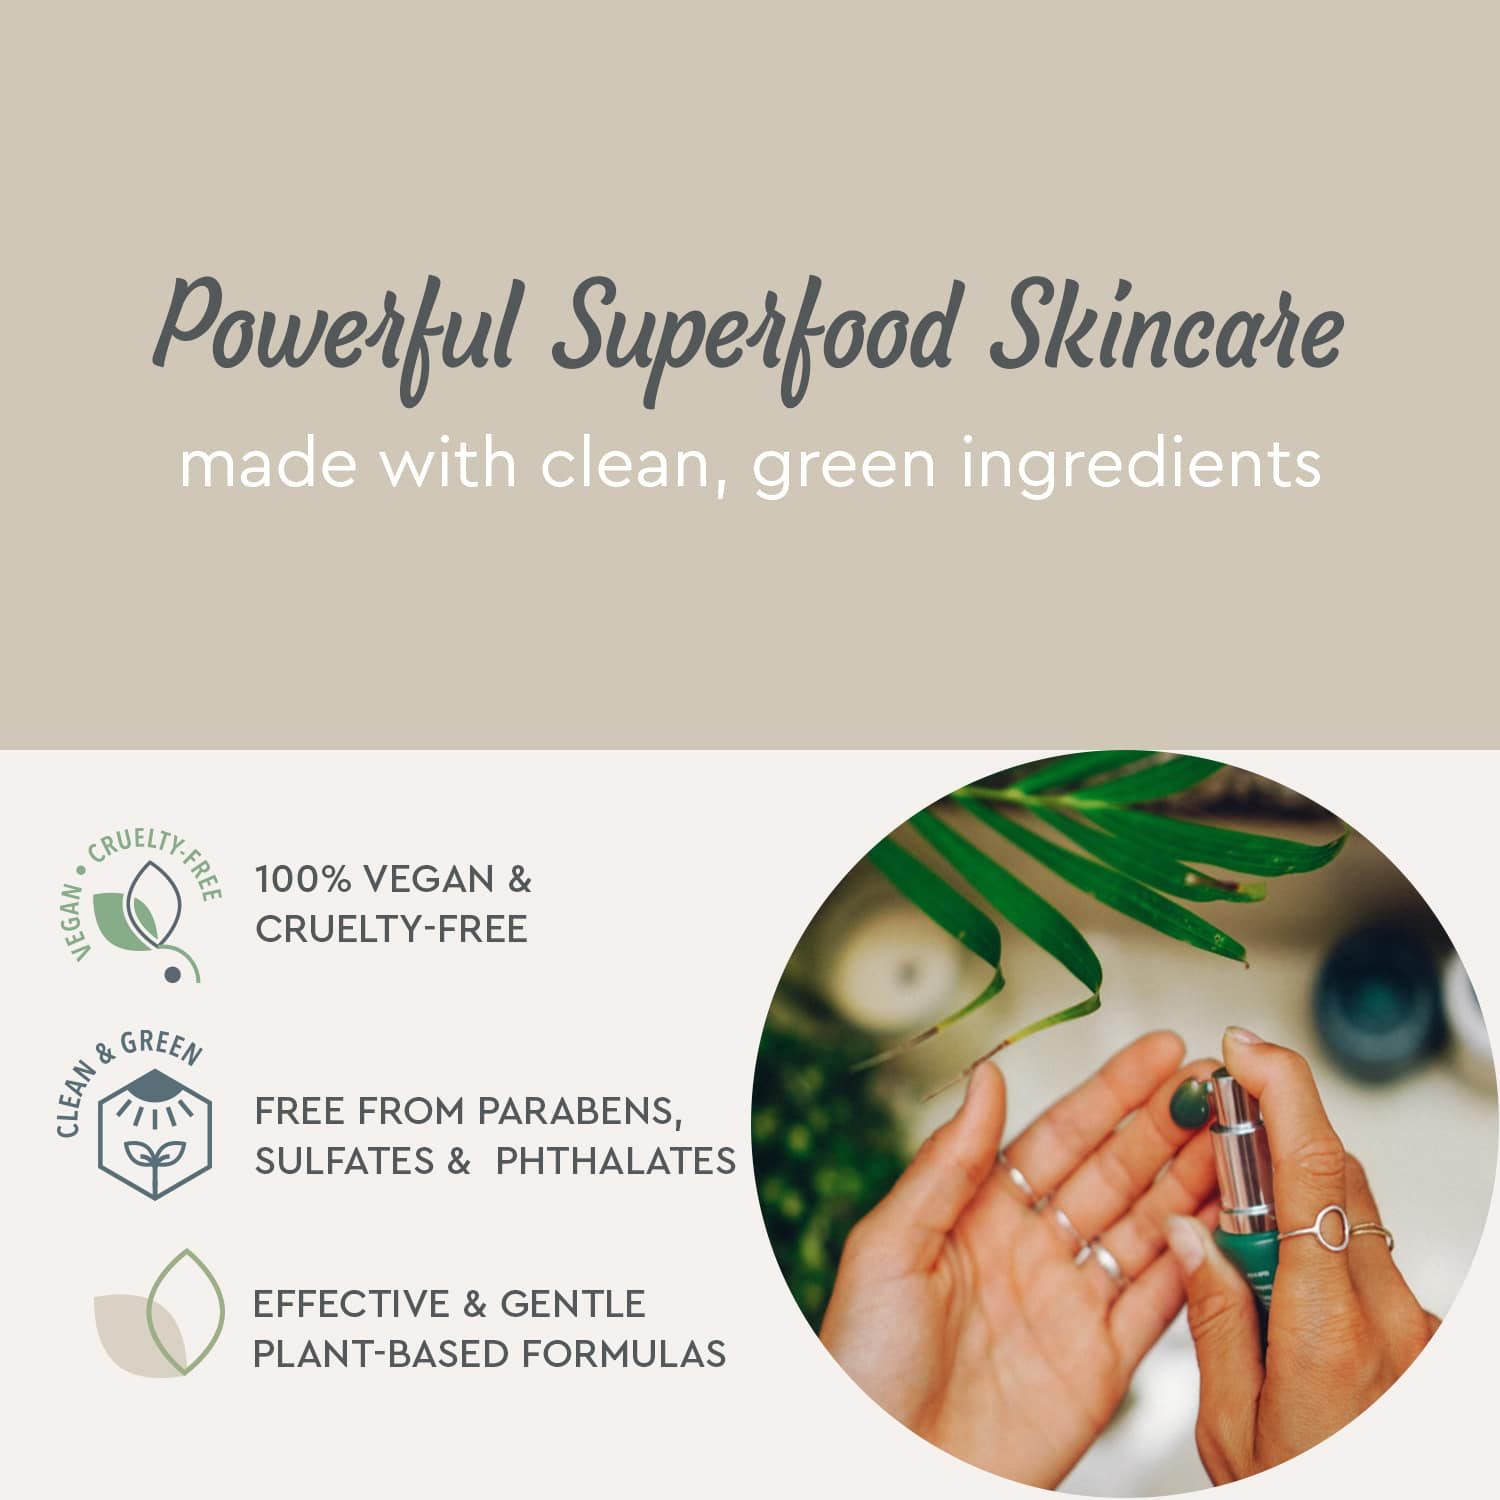 Powerful Superfood Skincare